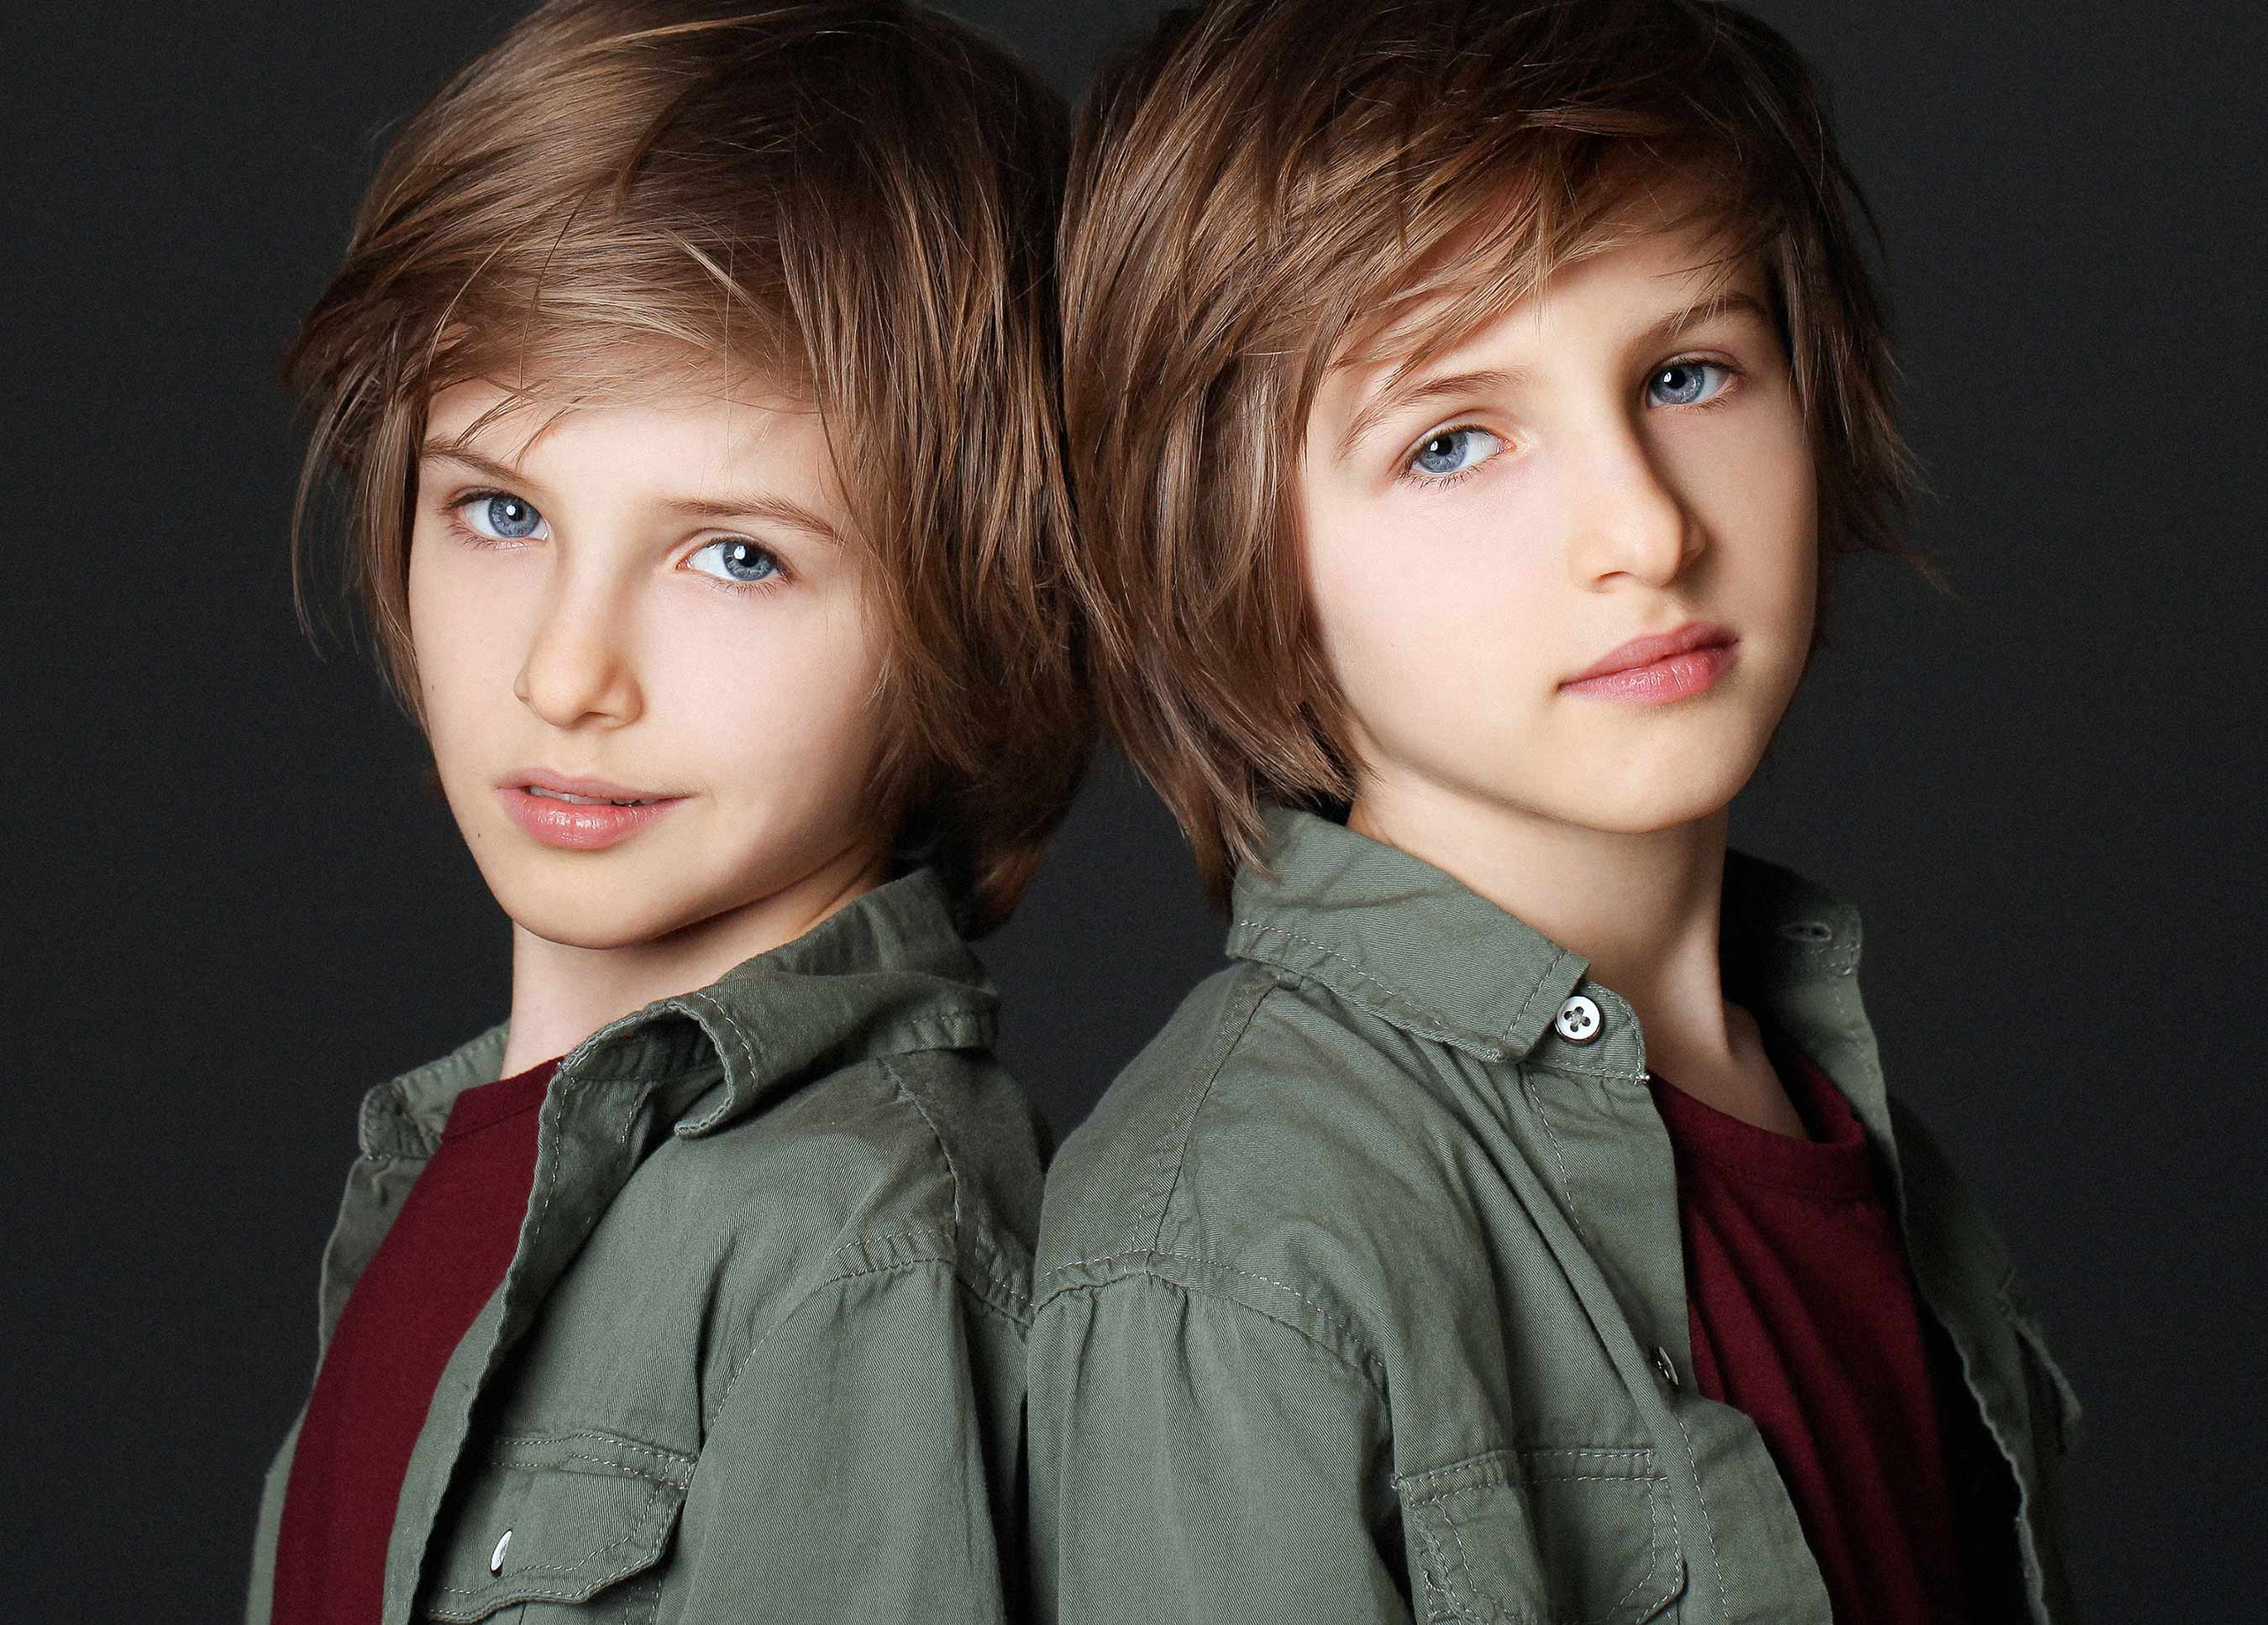 twins, family photos london ontario, child photograpers london toronto ontario, fine art portraits, headshots